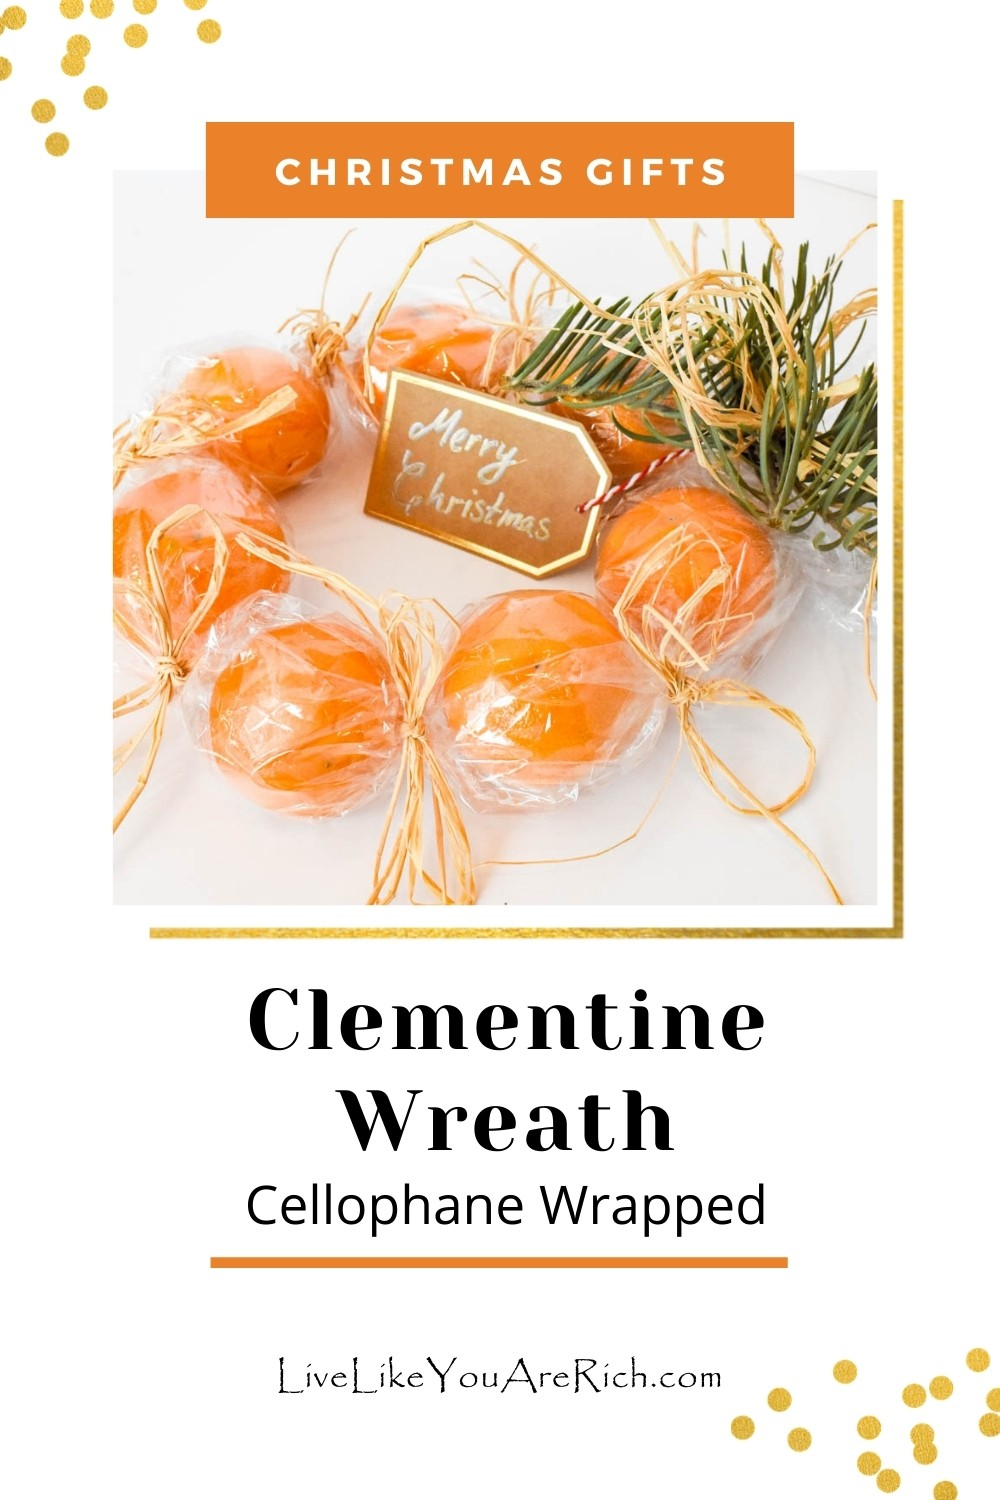 This clementine wreath-cellphone wrapped is a nice way to show appreciation to a friend, relative or neighbor for Christmas. These are easy to make—albeit a bit time consuming if you are trying to make a lot of them, but the end result is worth it! They take about 10 minutes each if you are making them alone.